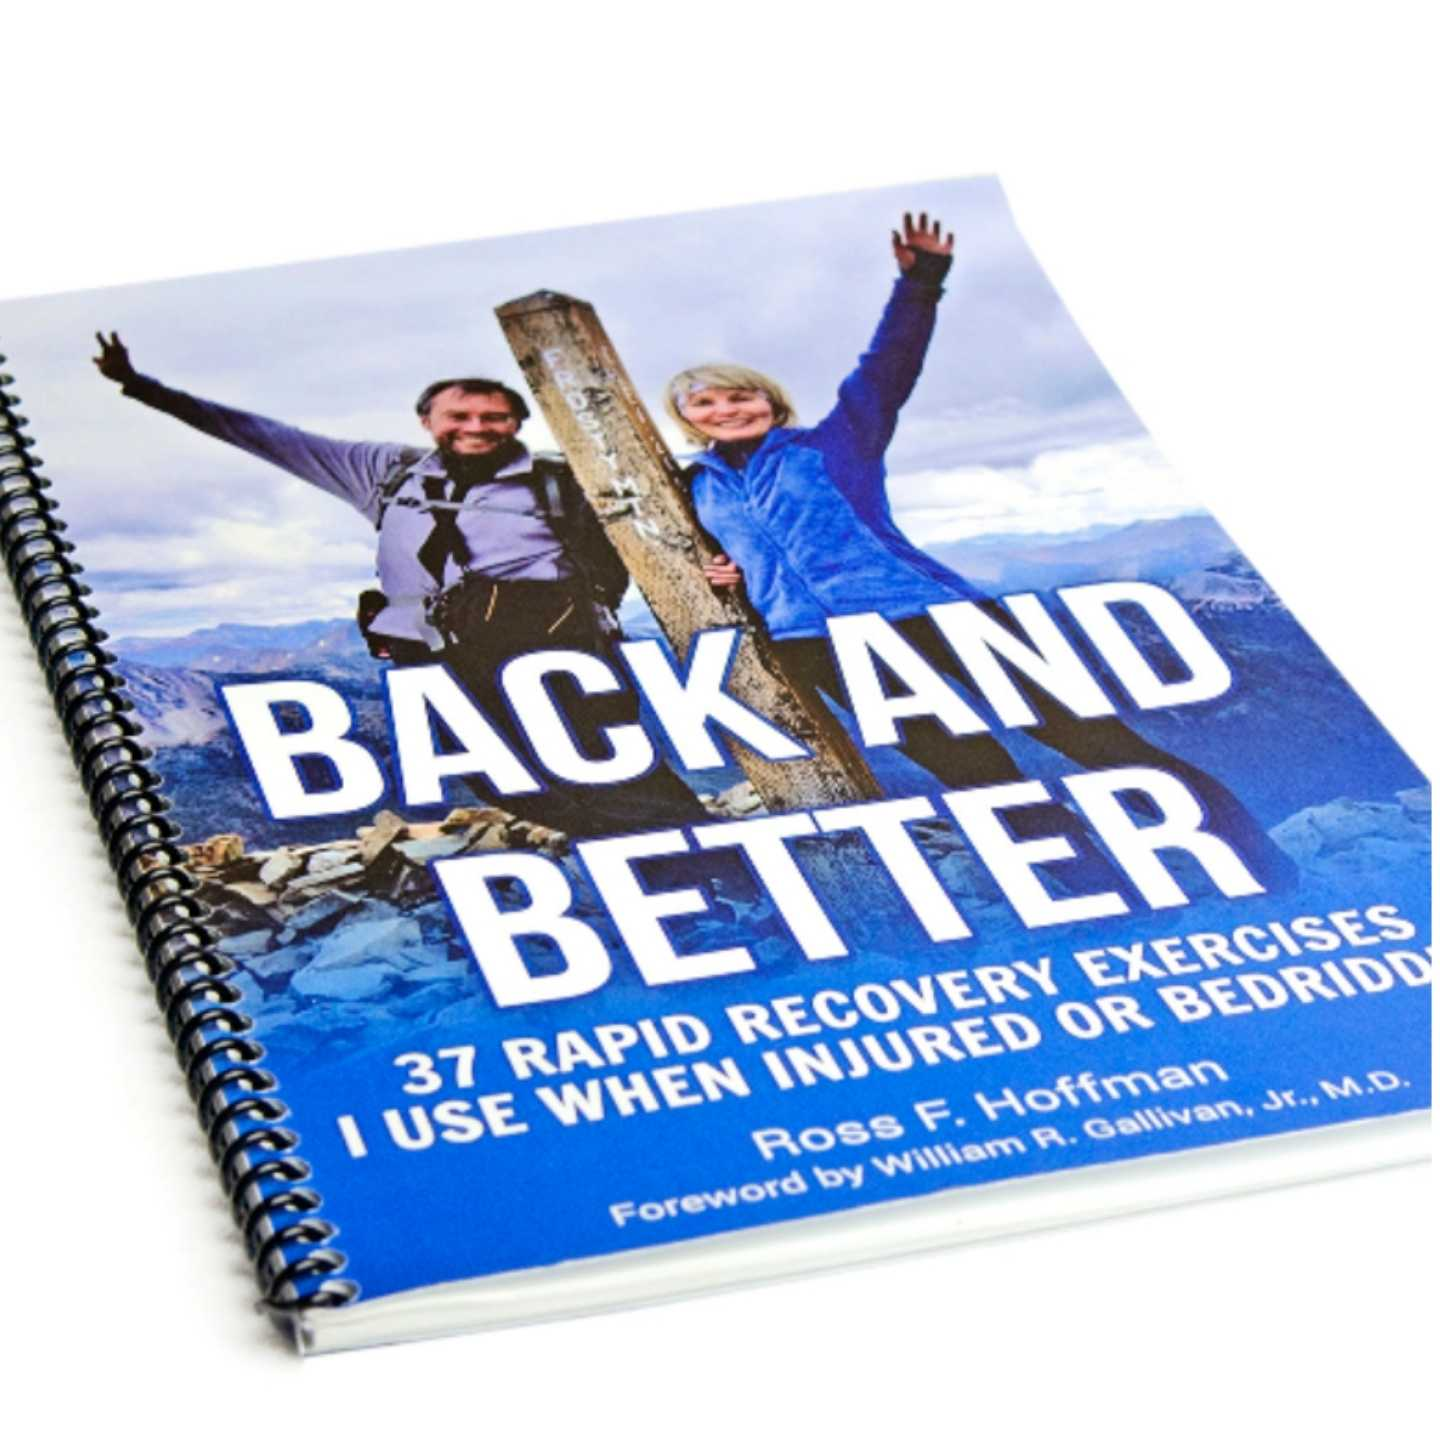 Back and Better, 360 MAGAZINE, Ross F. Hoffman